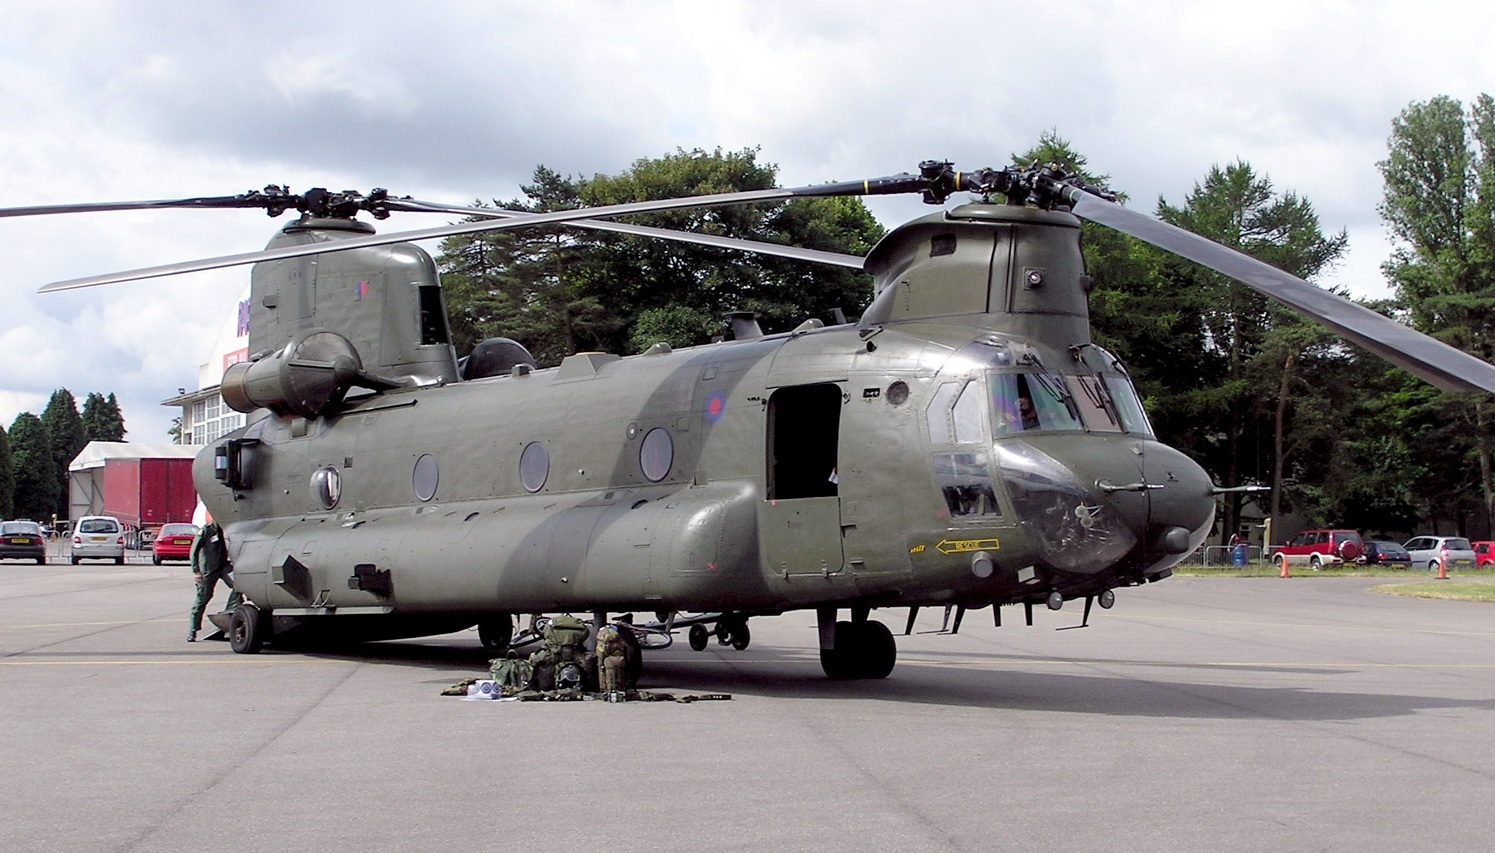 helicopter crash mull of kintyre with Helicoptere Utilitaire Ch 47 Chinook on Helicopter Crash likewise Severe Delays South Of Lincoln After Serious A1 Lorry Crash as well 2623 Trumps Scabbed Up Boeing Death as well Crash Site besides Military Helicopter Crash.